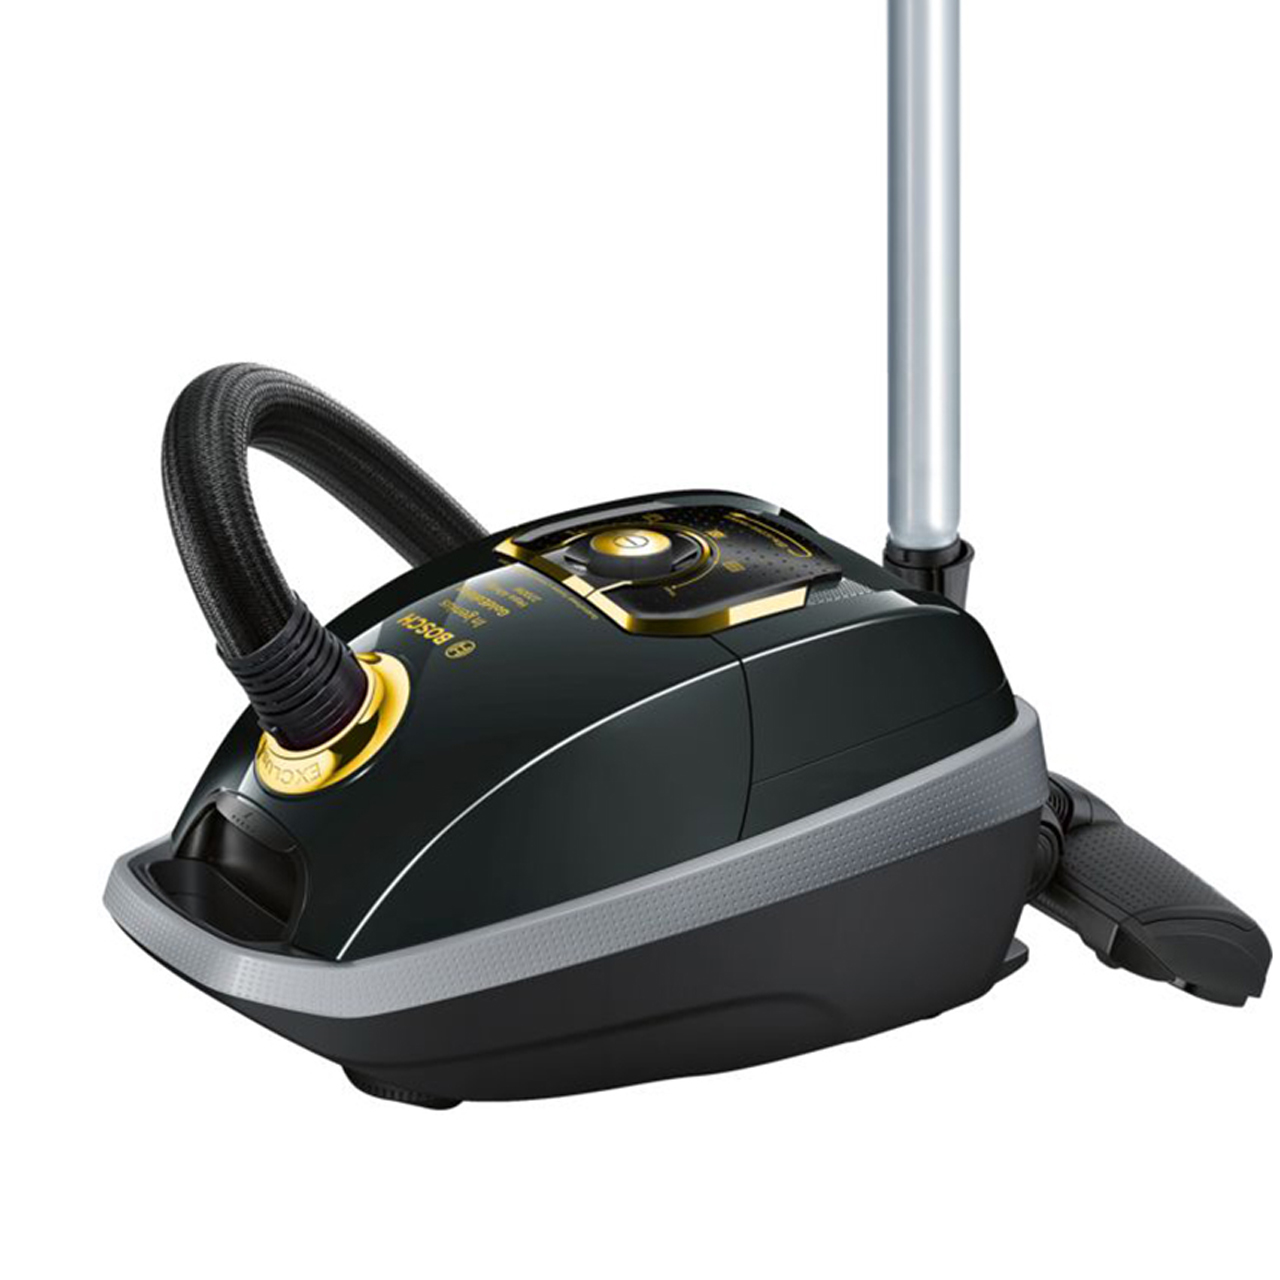 main images جاروبرقی گلدر بوش Bgl8Goldir Vacuum Cleaner Bosch Bgl8Goldir Vacuum Cleaner Bosch